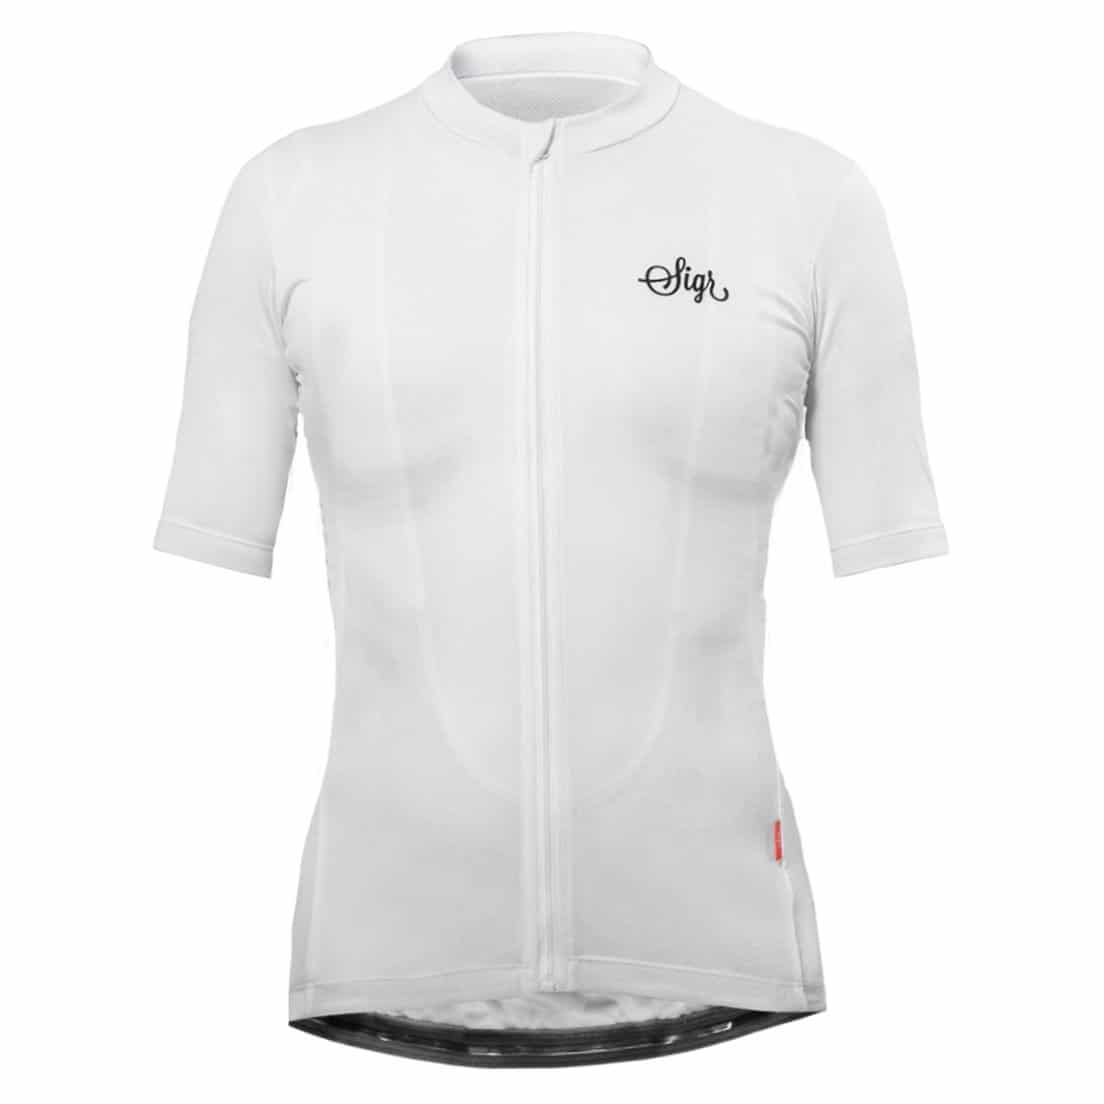 Sigr – Syren White Cycling Jersey for Women